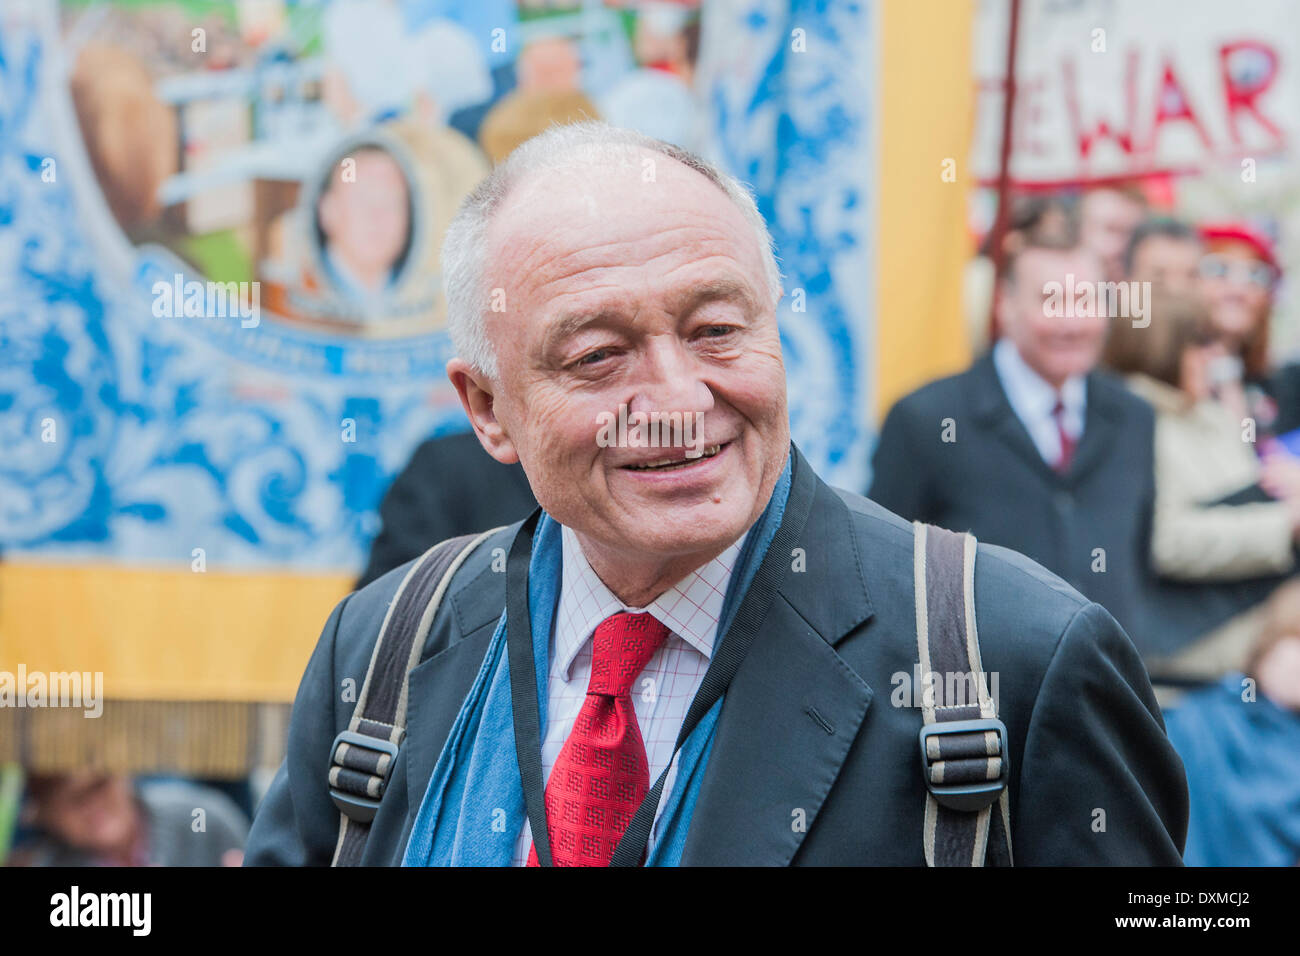 London, UK . 27th Mar, 2014. Ken Livingstone. Tony Benn's funeral at 11.00am at St Margaret's Church, Westminster. His body was brought in a hearse from the main gates of New Palace Yard at 10.45am, and was followed by members of his family on foot. The rout was lined by admirers. On arrival at the gates it was carried into the church by members of the family. Thursday 27th March 2014, London, UK. Credit:  Guy Bell/Alamy Live News - Stock Image